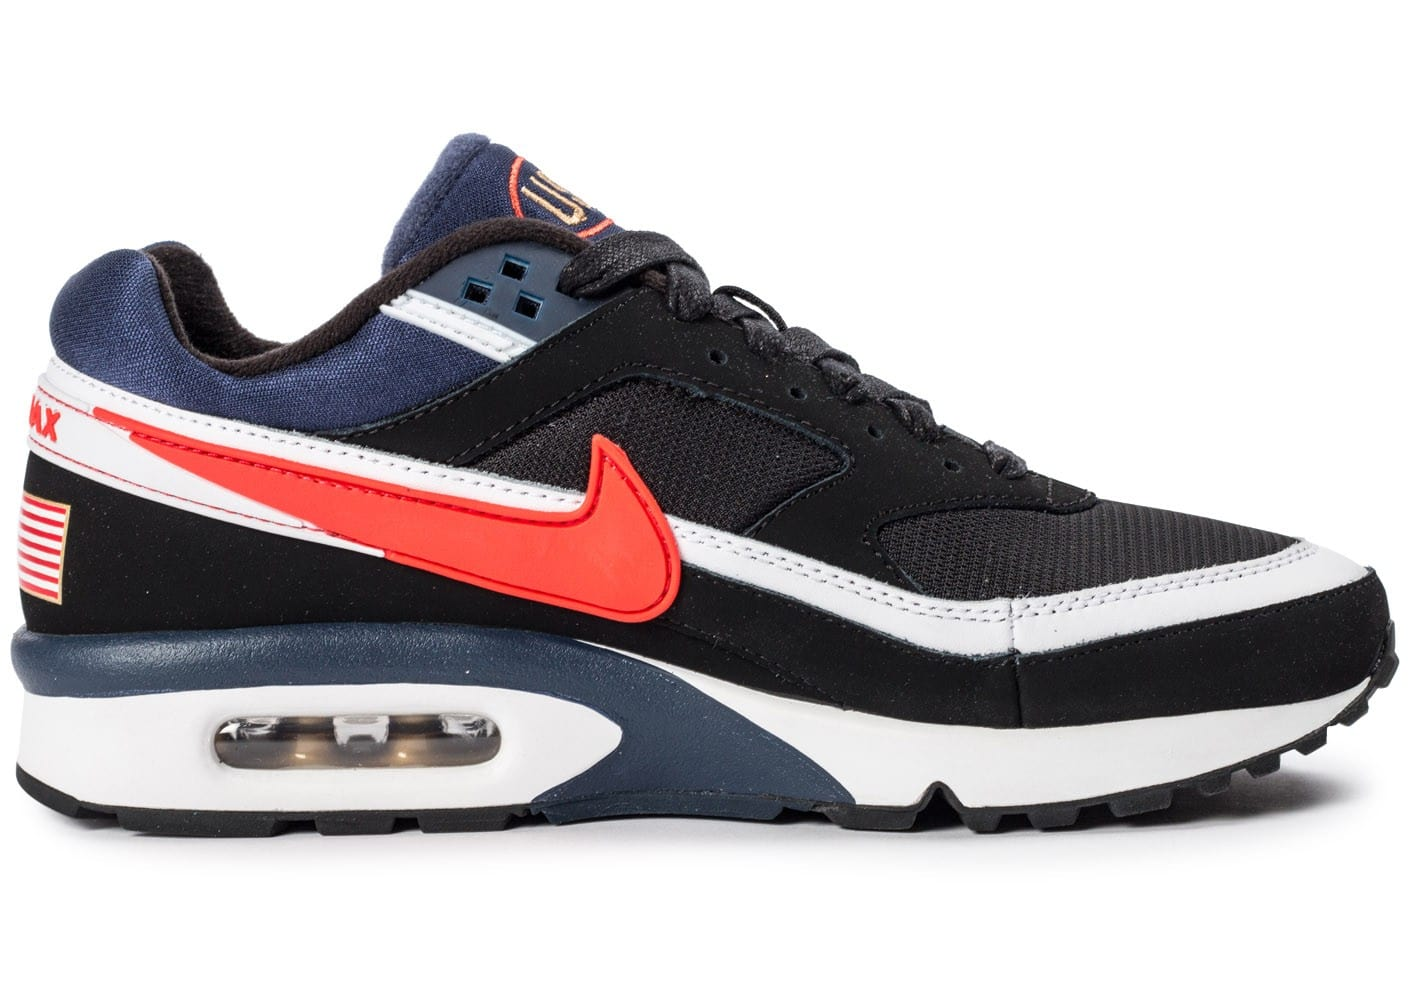 Bw Nike Usa Air Max Olympic Arriere Vue Usa chaussures NwX8kOn0P